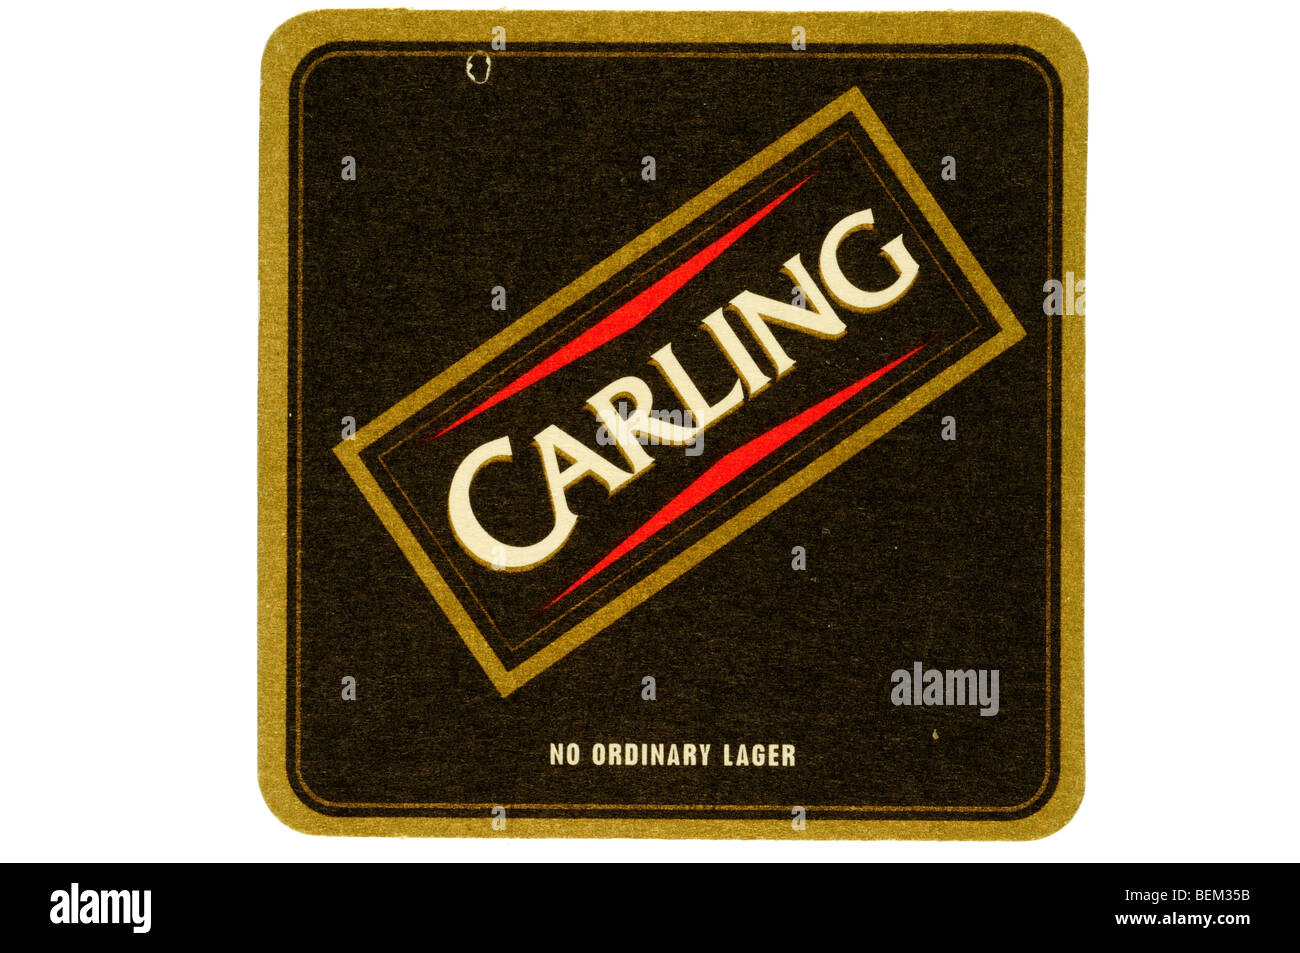 carling no ordinary lager - Stock Image